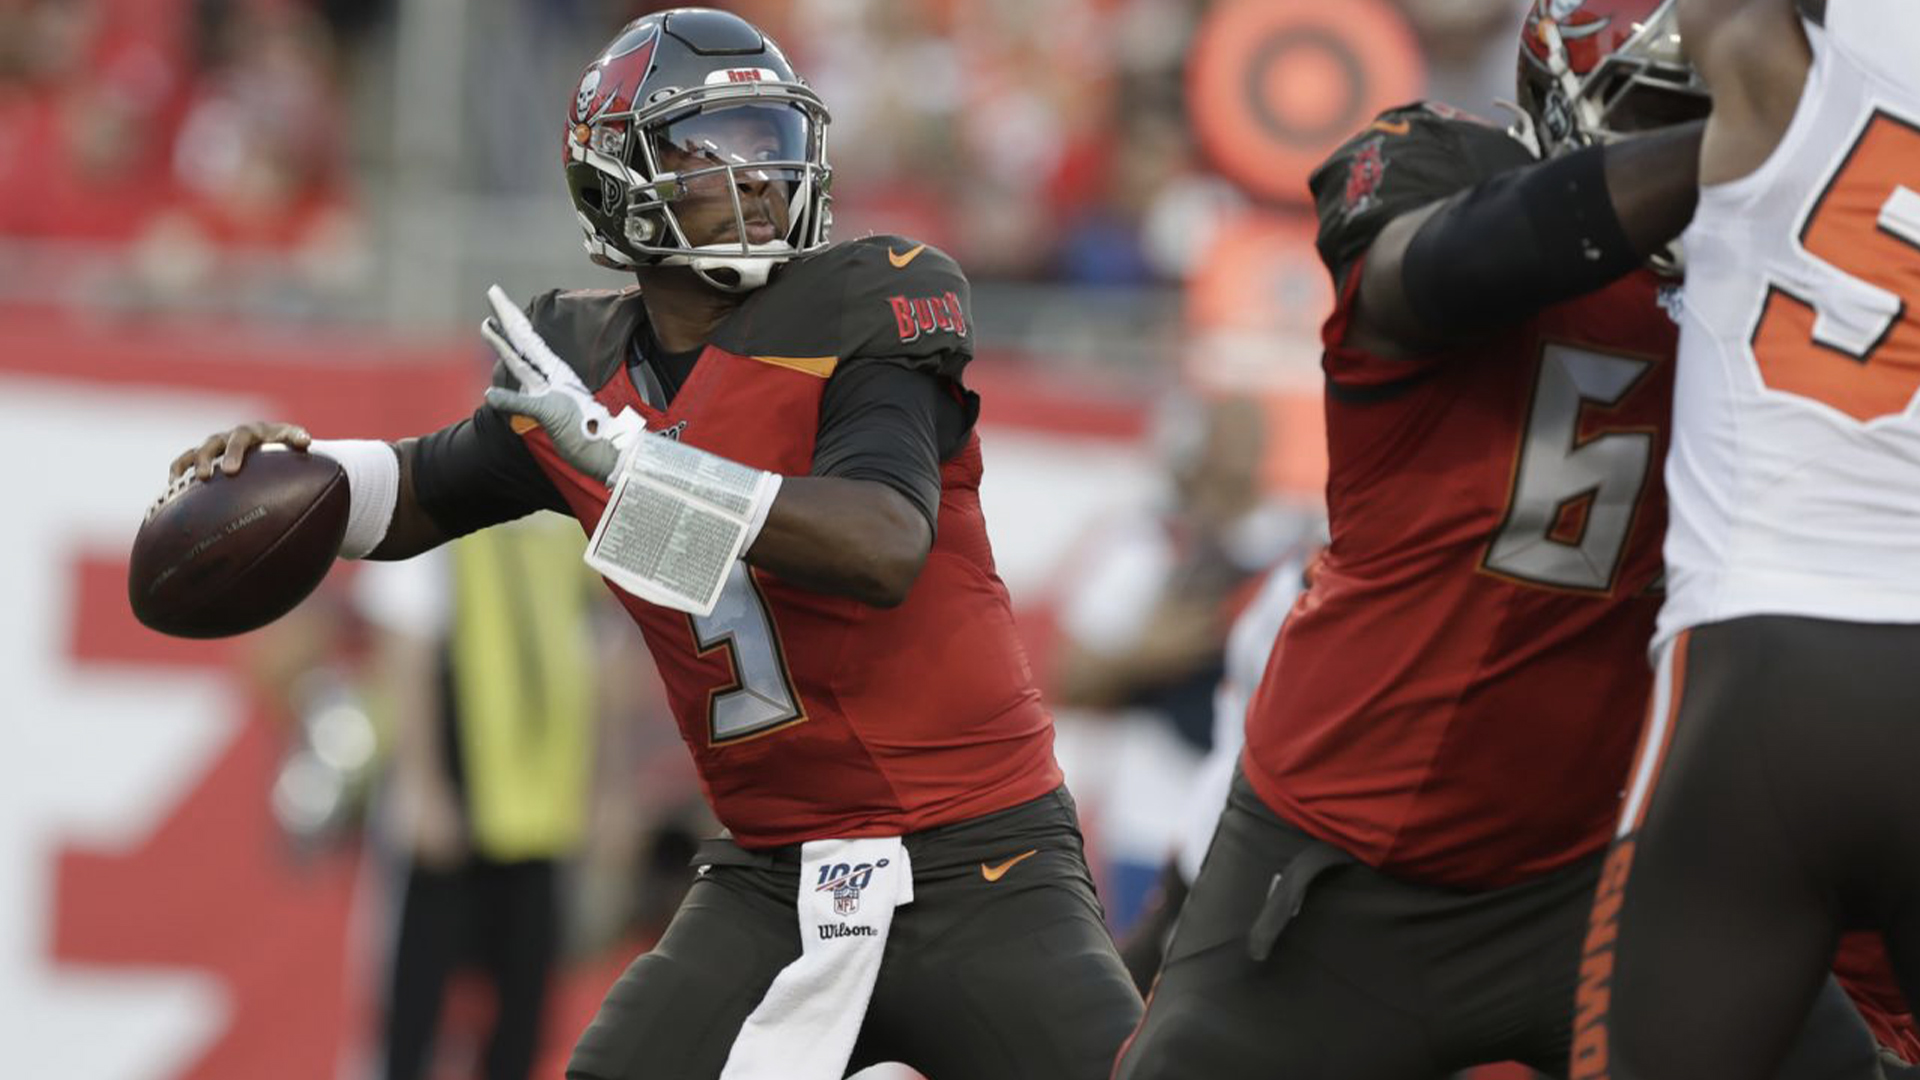 d272ef6e Buccaneers rally late, beat Browns 13-12 on rookie's FG | WFLA